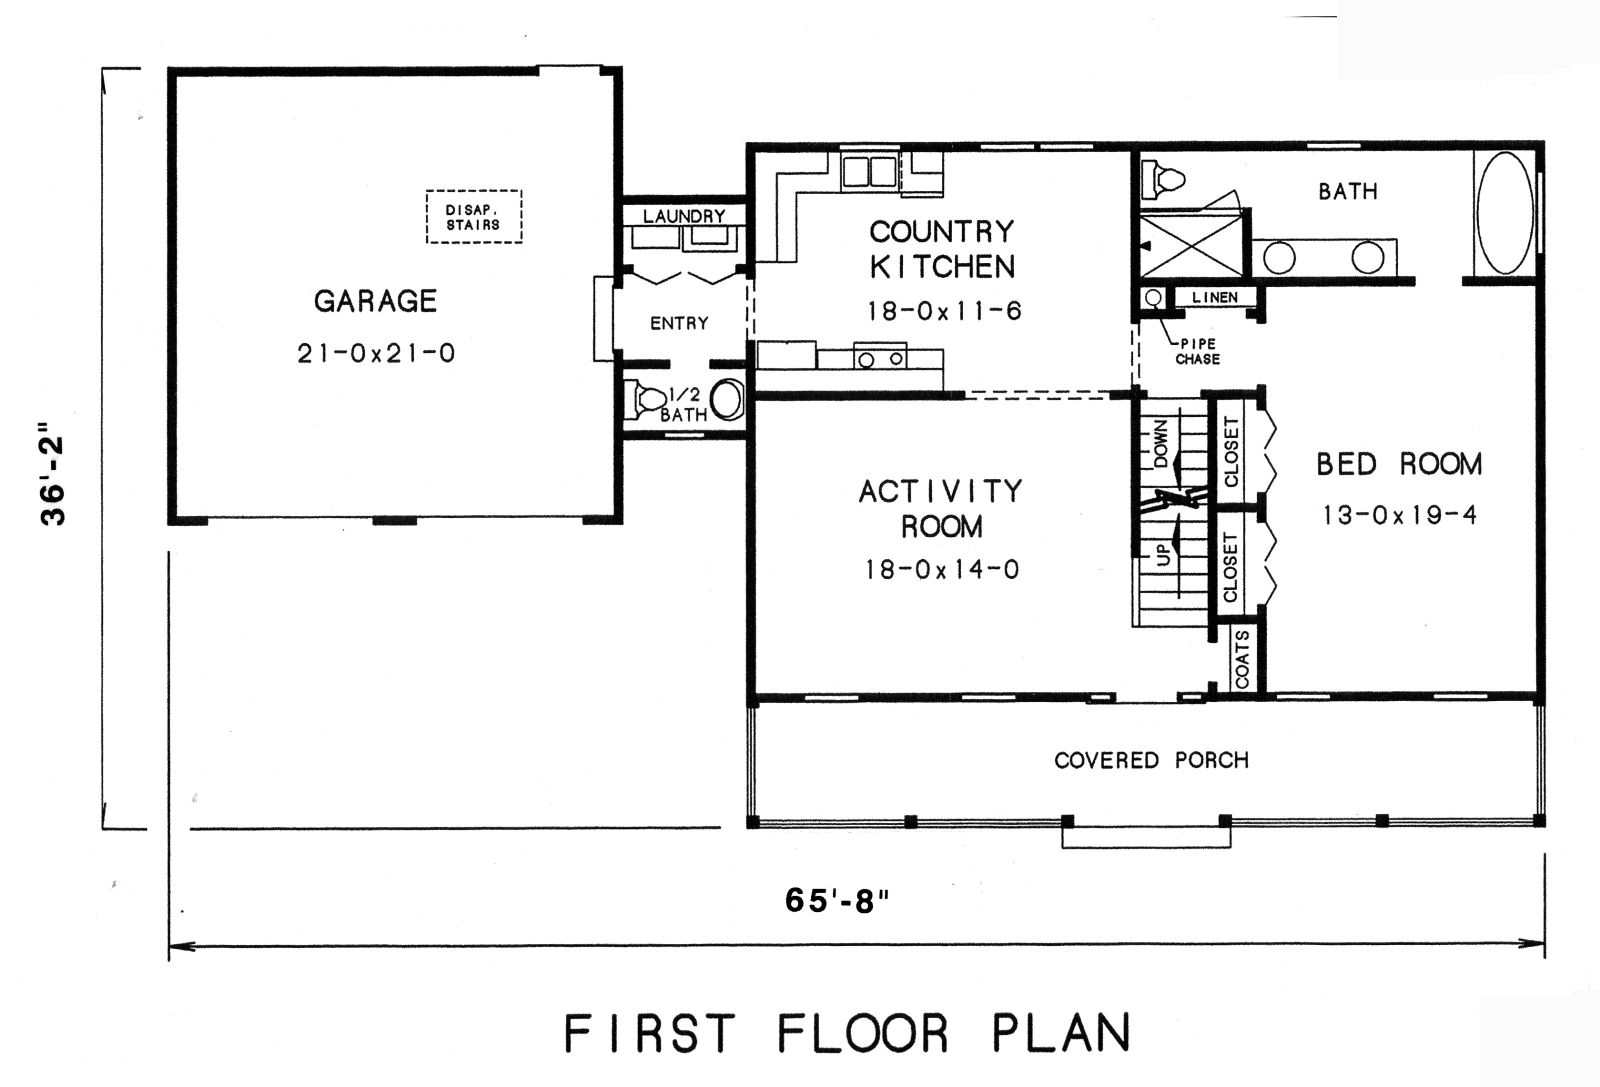 Cape cod house plan with 3 bedrooms and 2 5 baths plan 3569 for Cape cod house floor plans